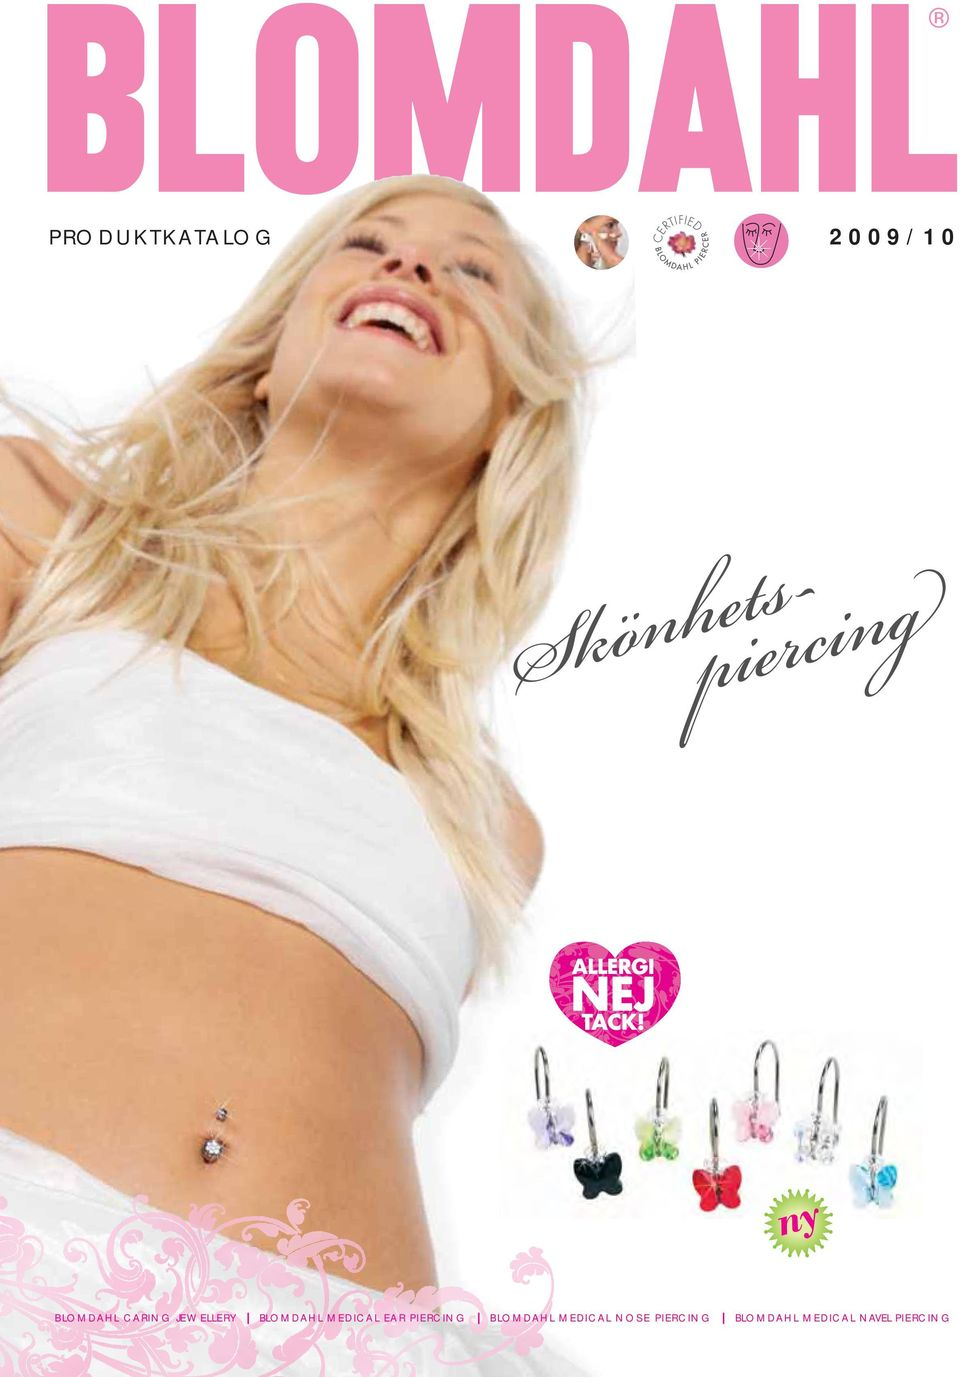 MEDICAL EAR PIERCING I BLOMDAHL MEDICAL